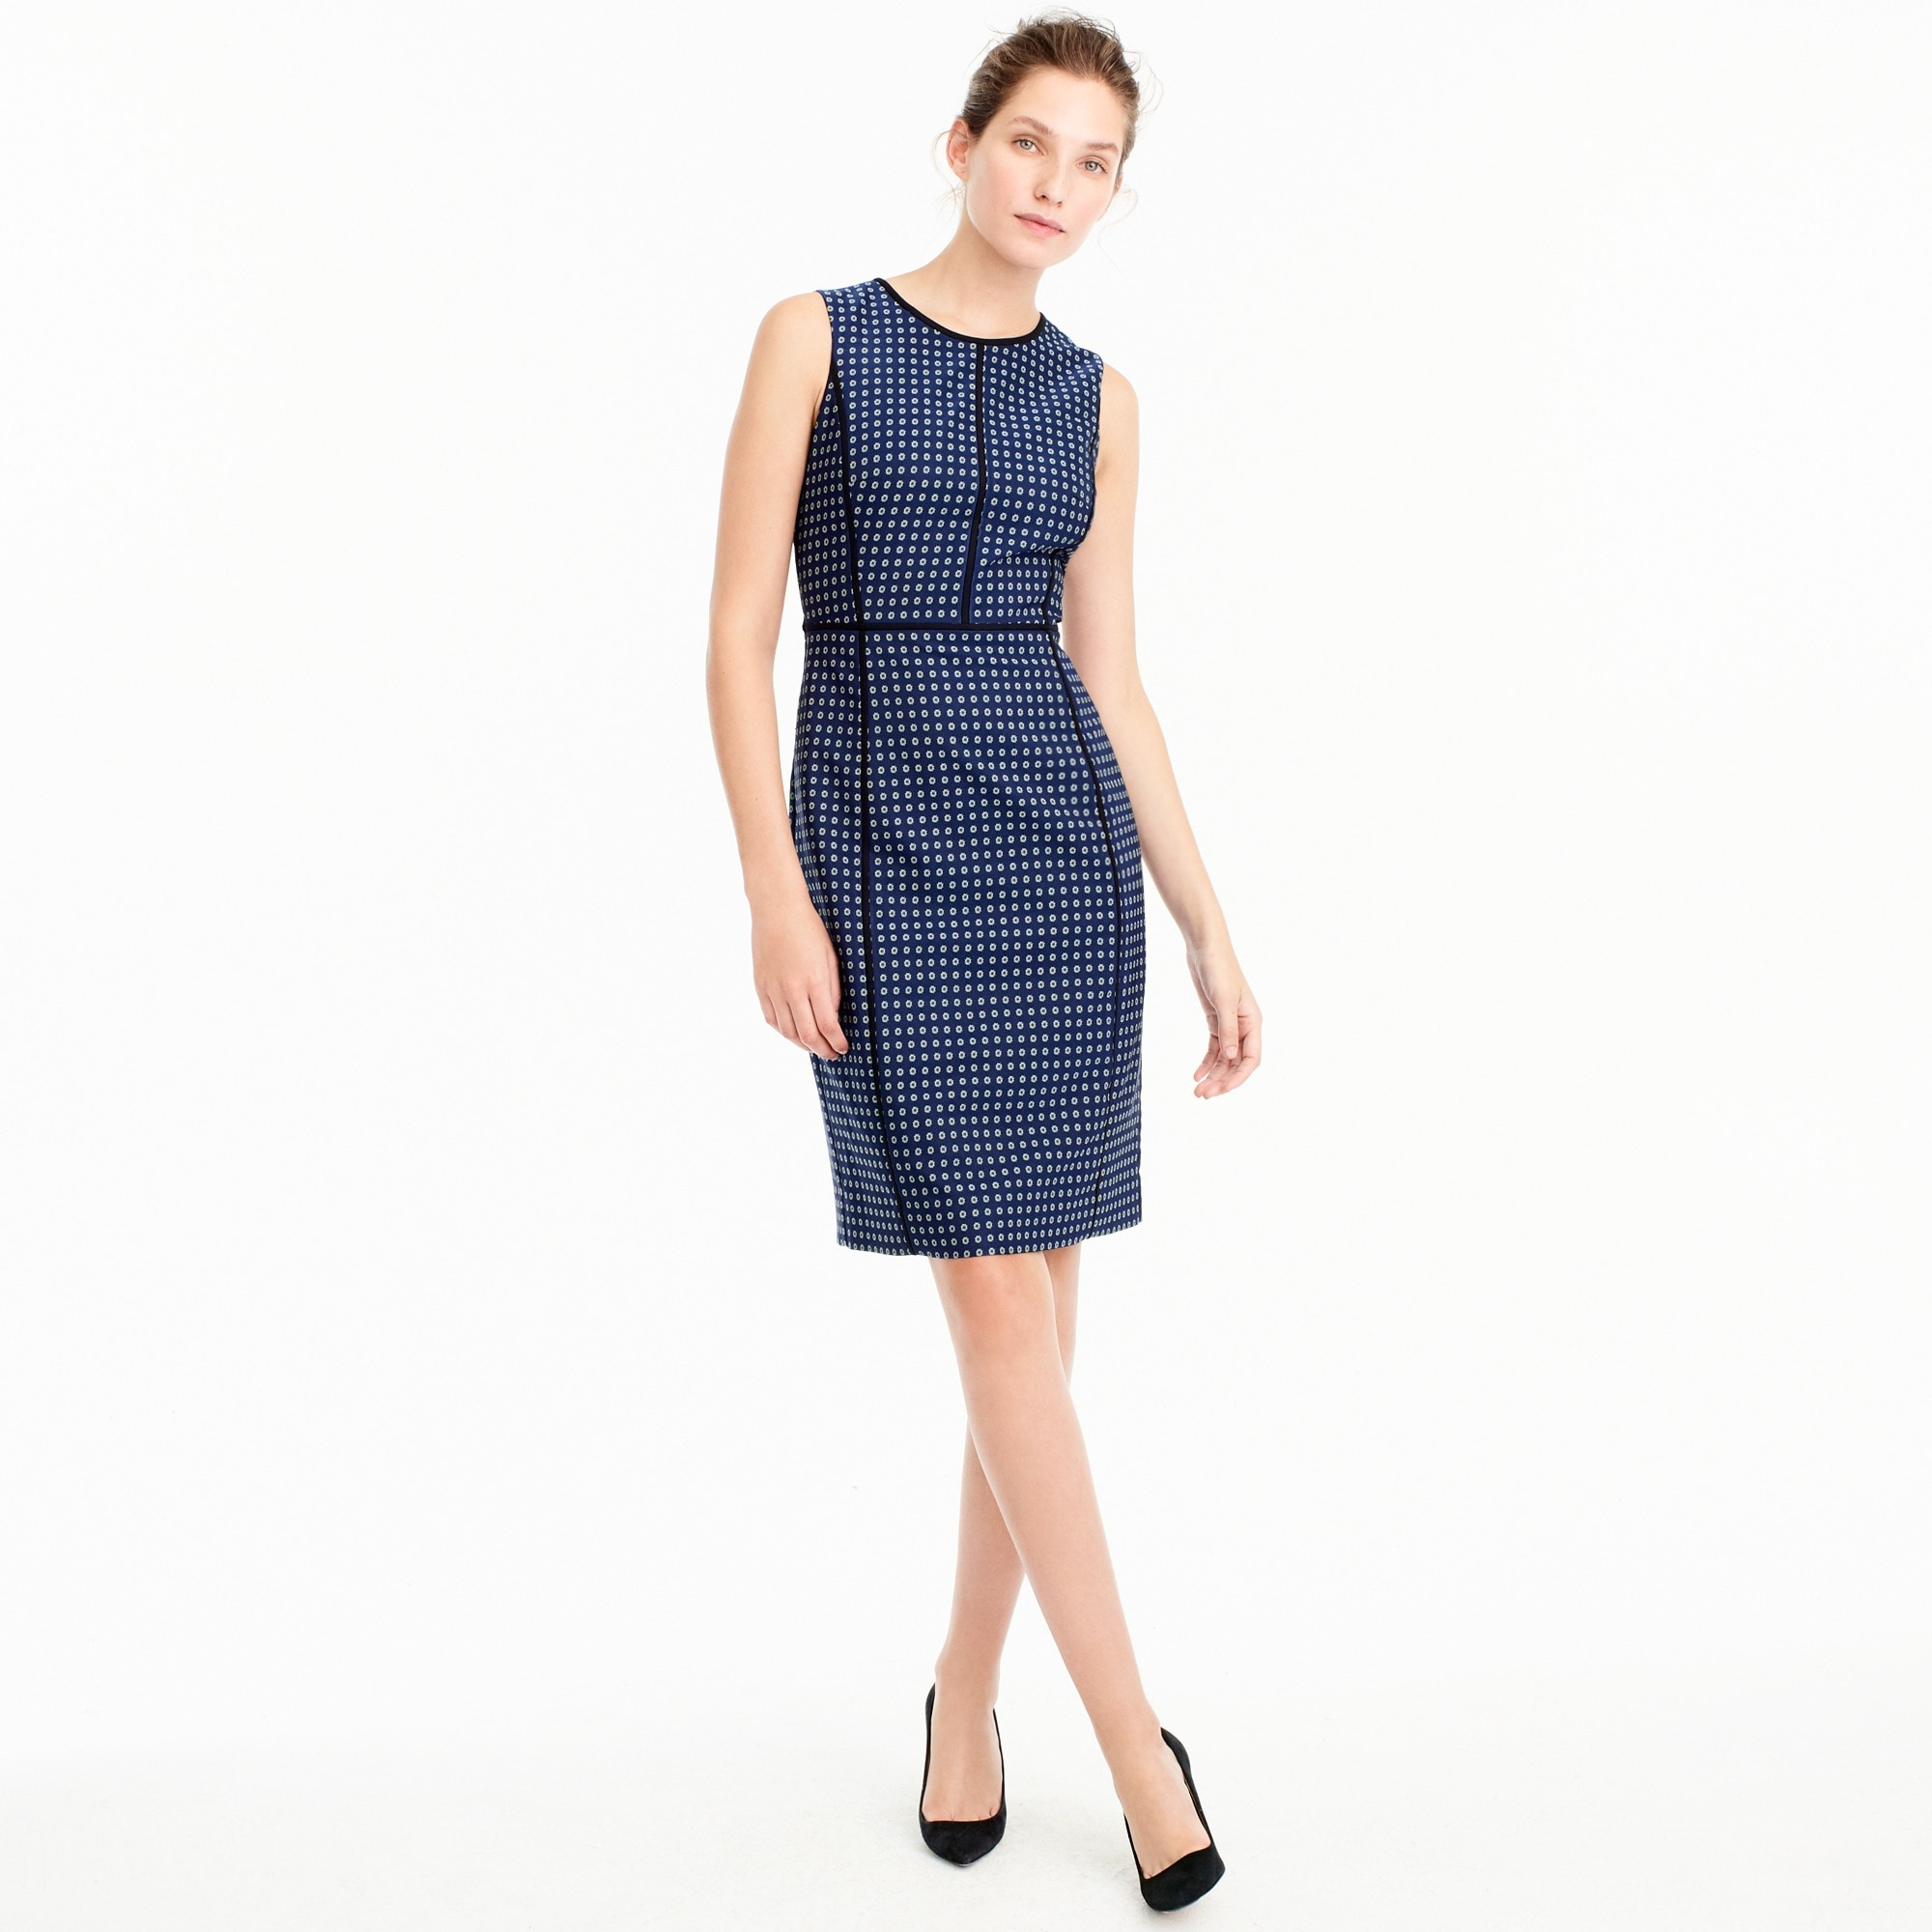 Paneled sheath dress women suiting c